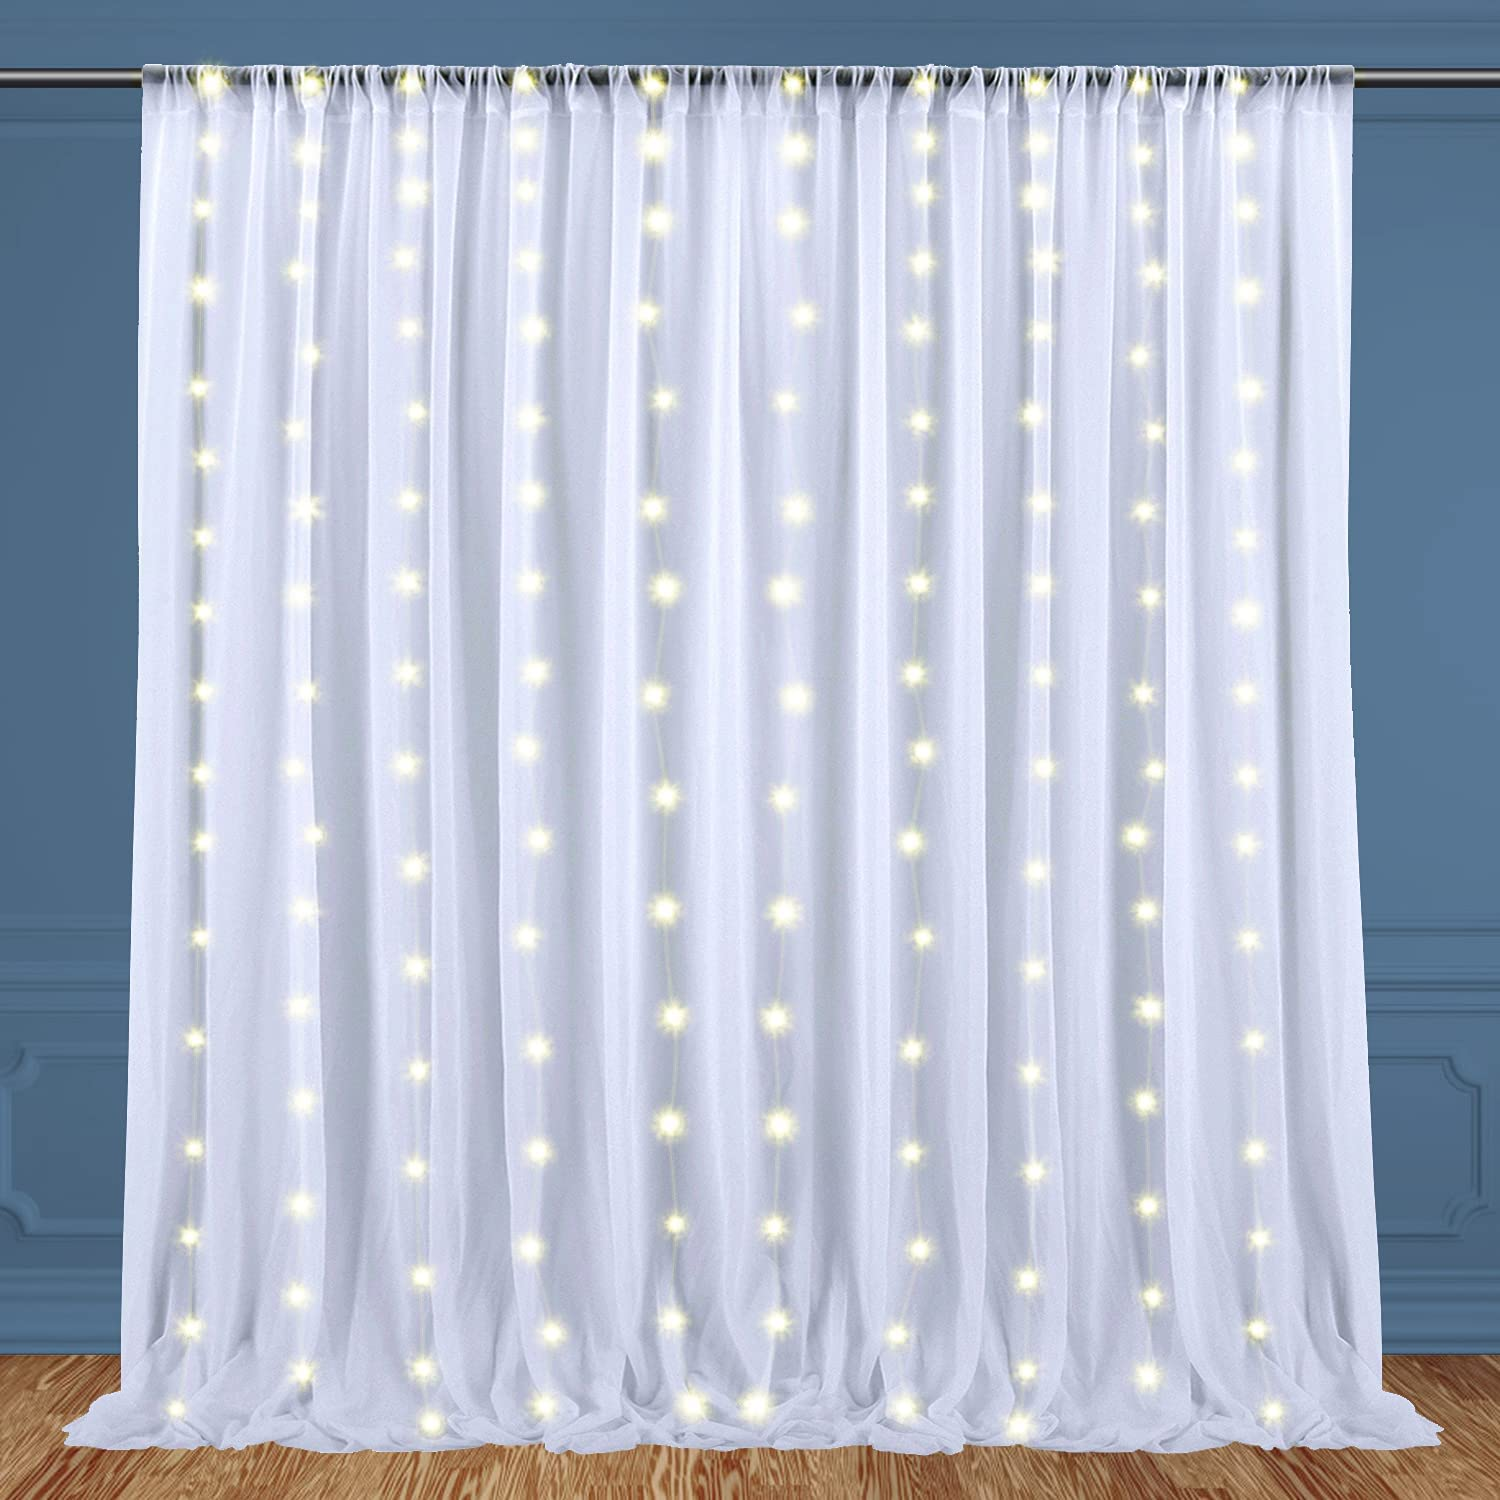 10x10ft White Sheer Daily bargain sale Tulle Popular brand Backdrop Strip Light with for Curtain